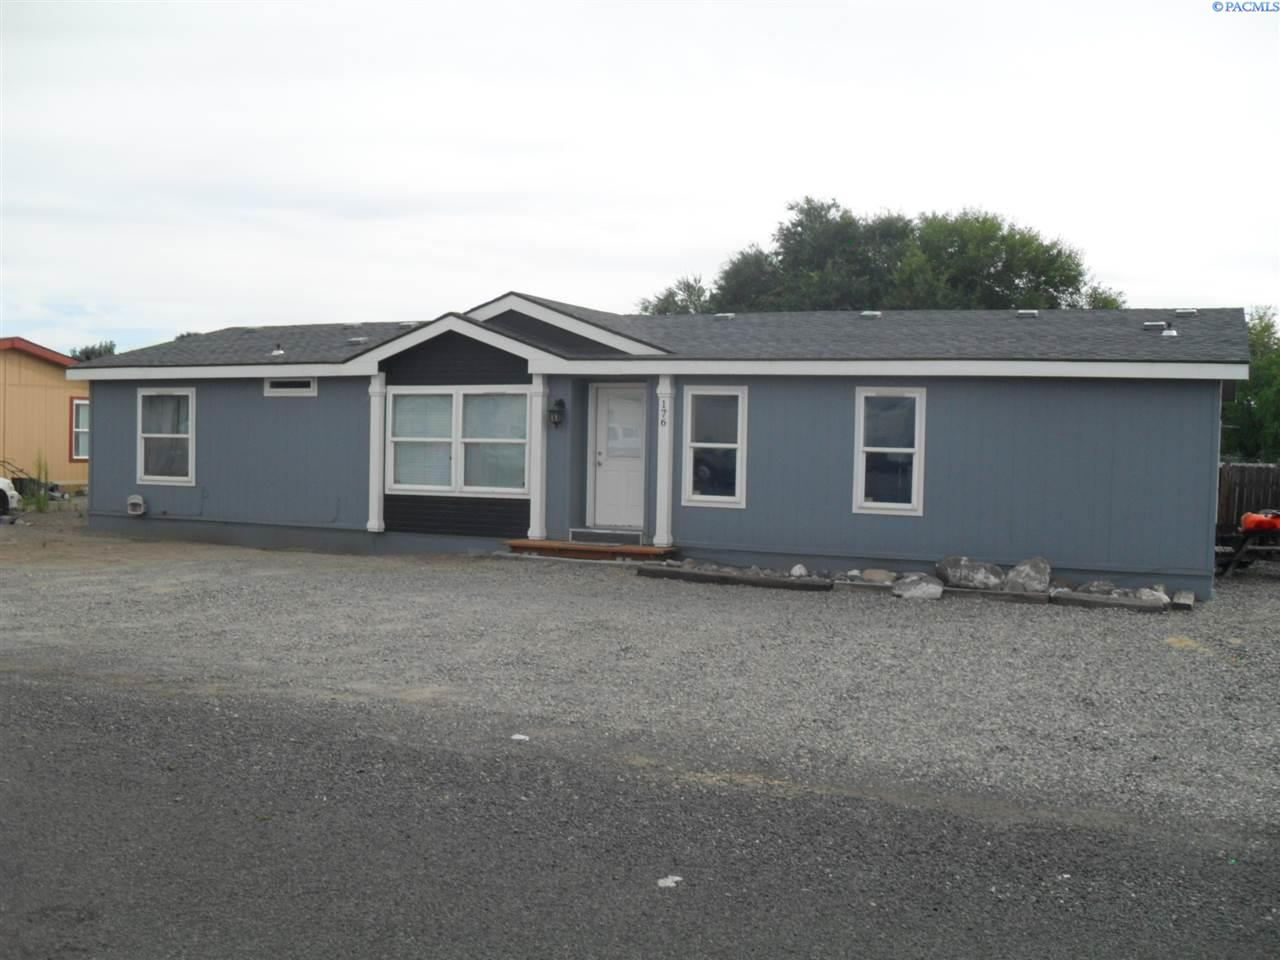 Manufactured Home for Sale at 176 Columbia Road Burbank, Washington 99323 United States